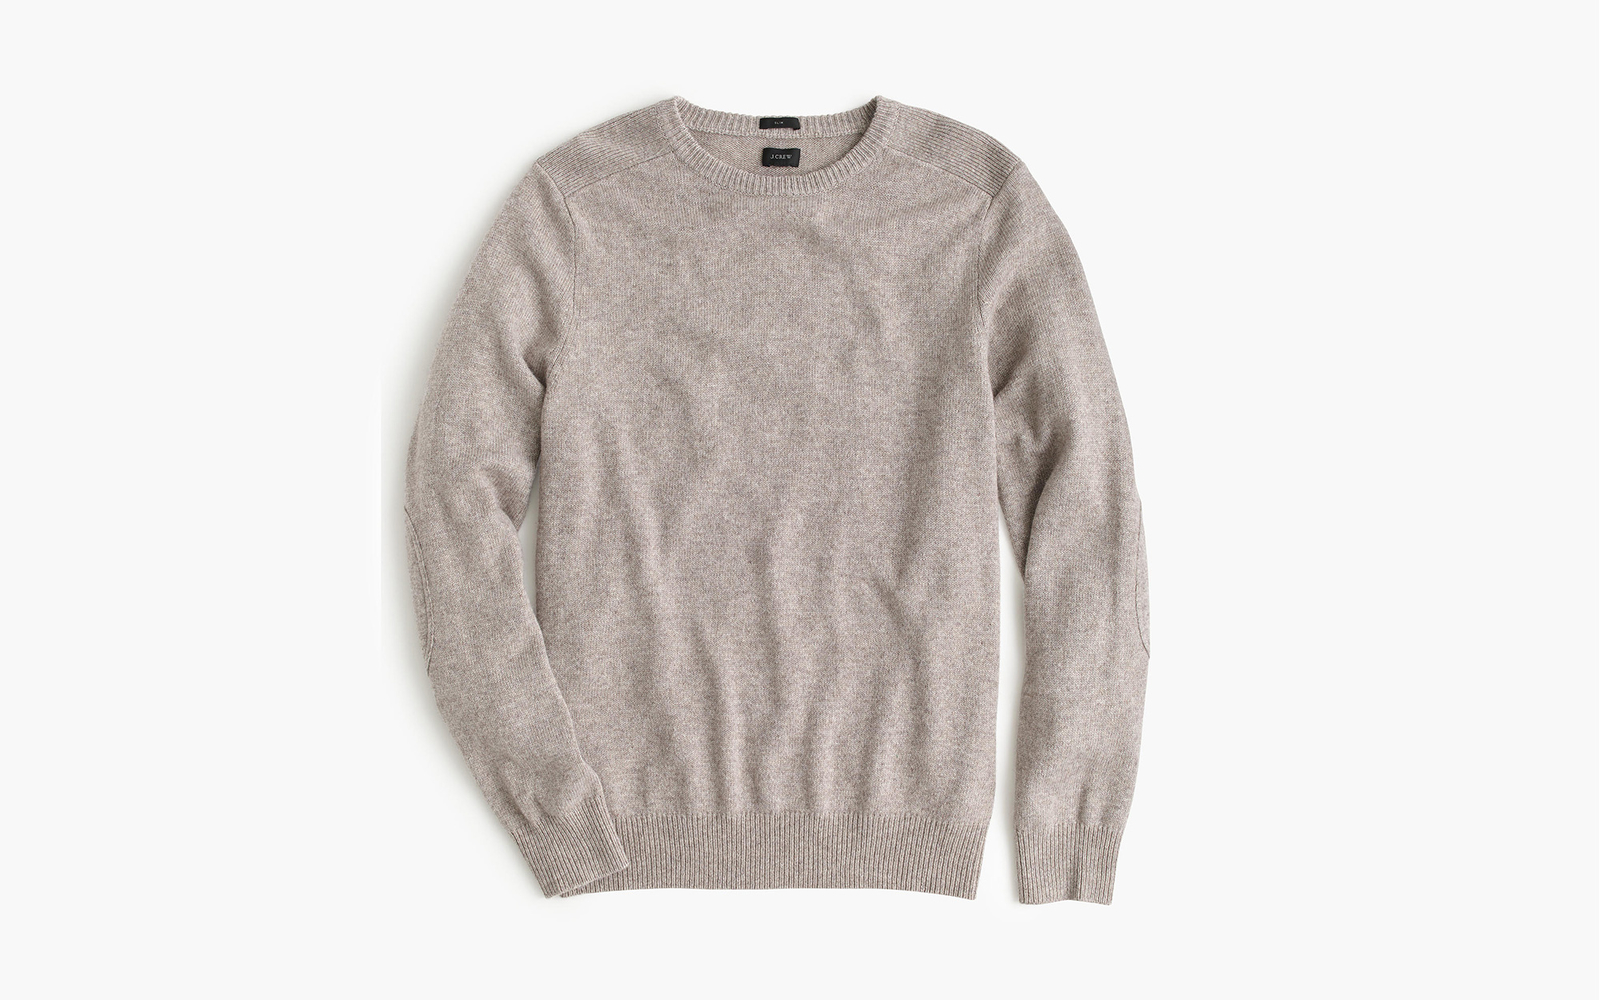 PARIS1015-mens-jcrew-sweater.jpg